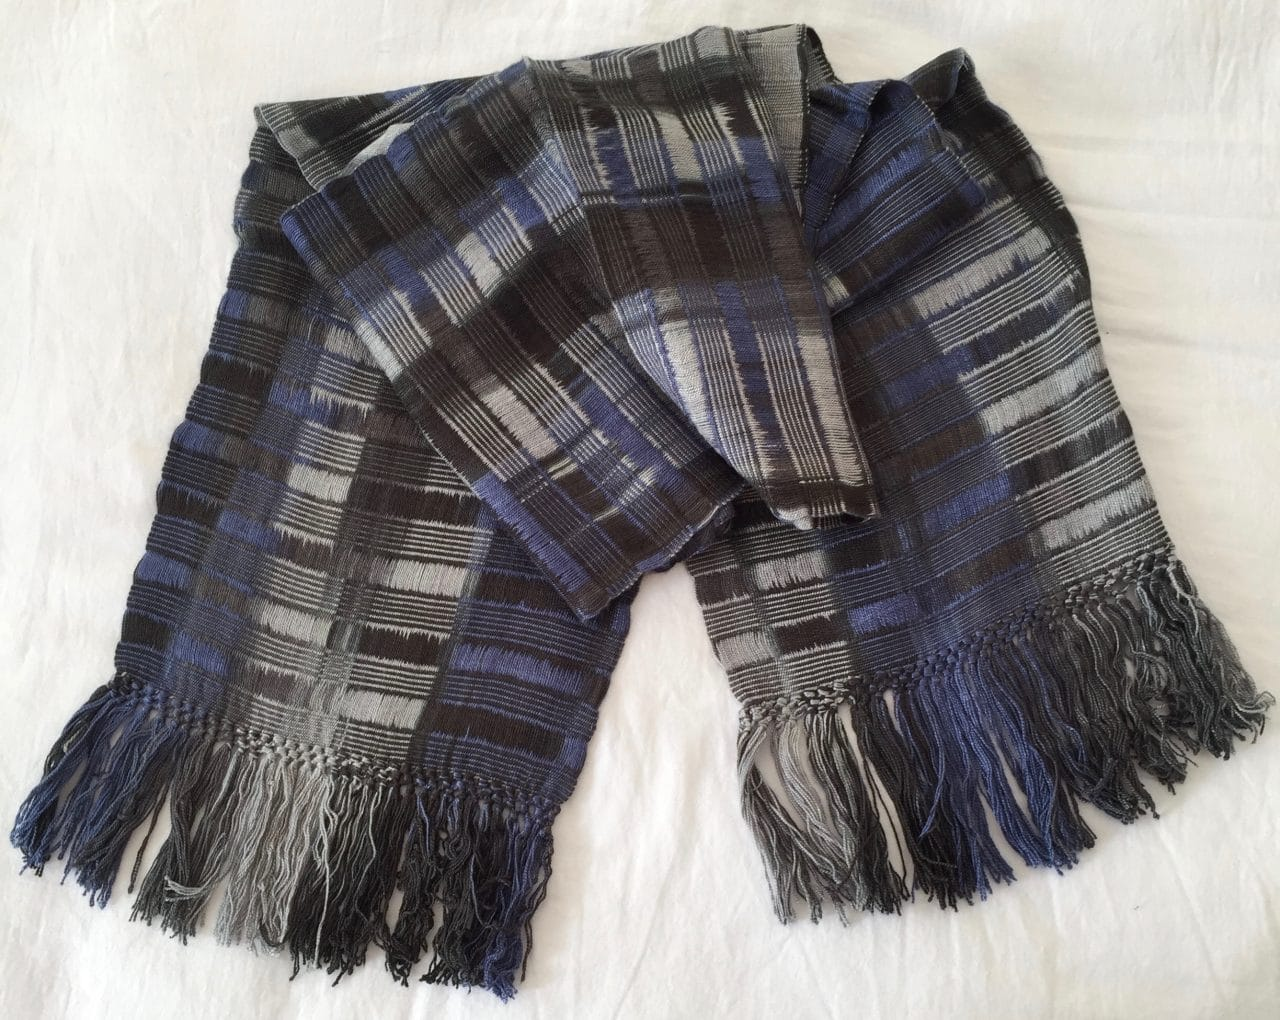 Blue, Grays, Black - Lightweight Bamboo Open-Weave Handwoven Scarf 8 x 68